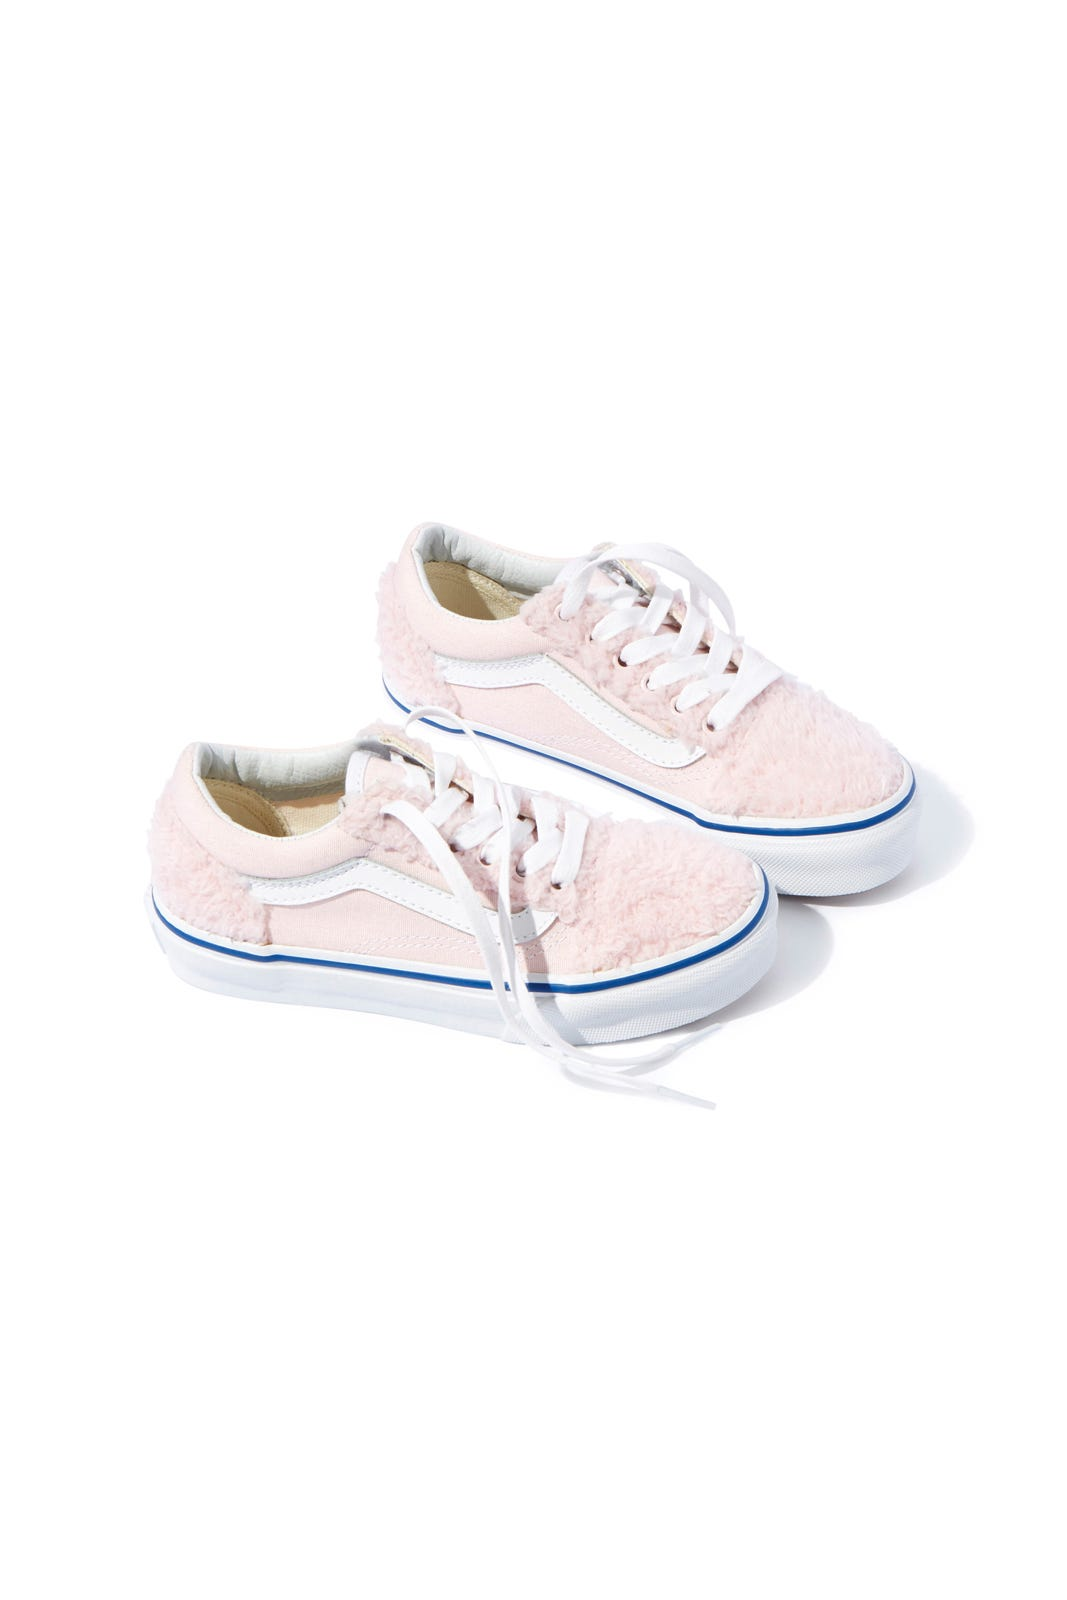 01727984bac Nordstrom Vans Pop Up Collaboration Shoes Clothing